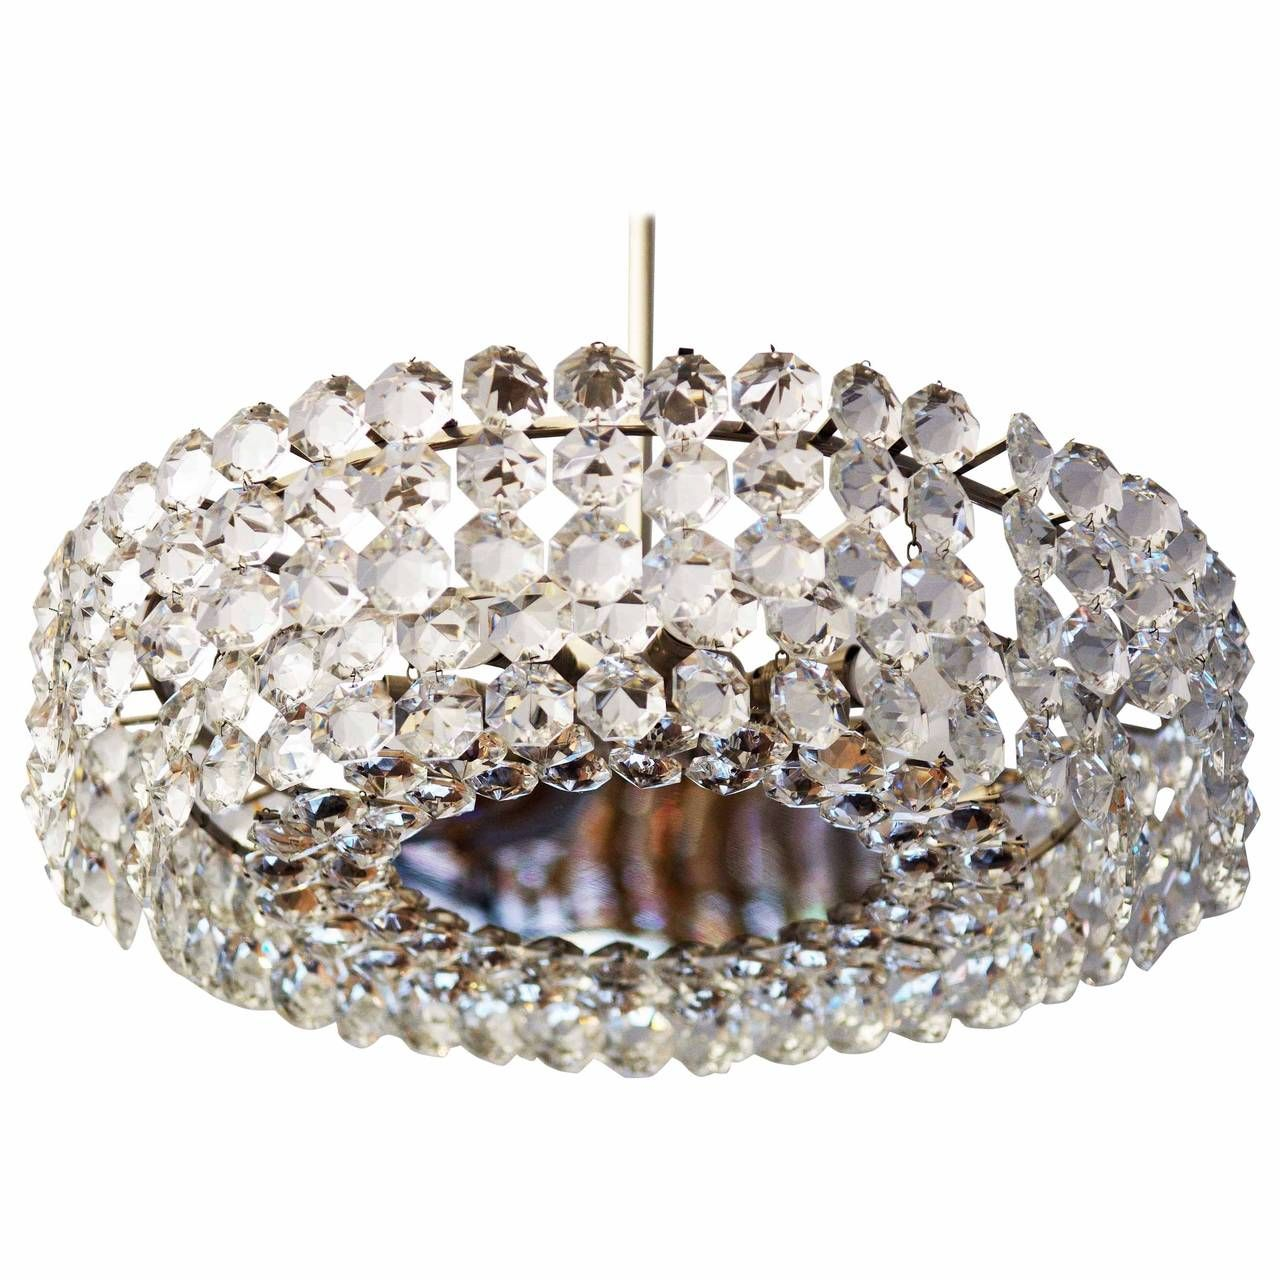 Midcentury austrian crystal chandelier by bakalowits and sohne midcentury austrian crystal chandelier by bakalowits and sohne aloadofball Image collections